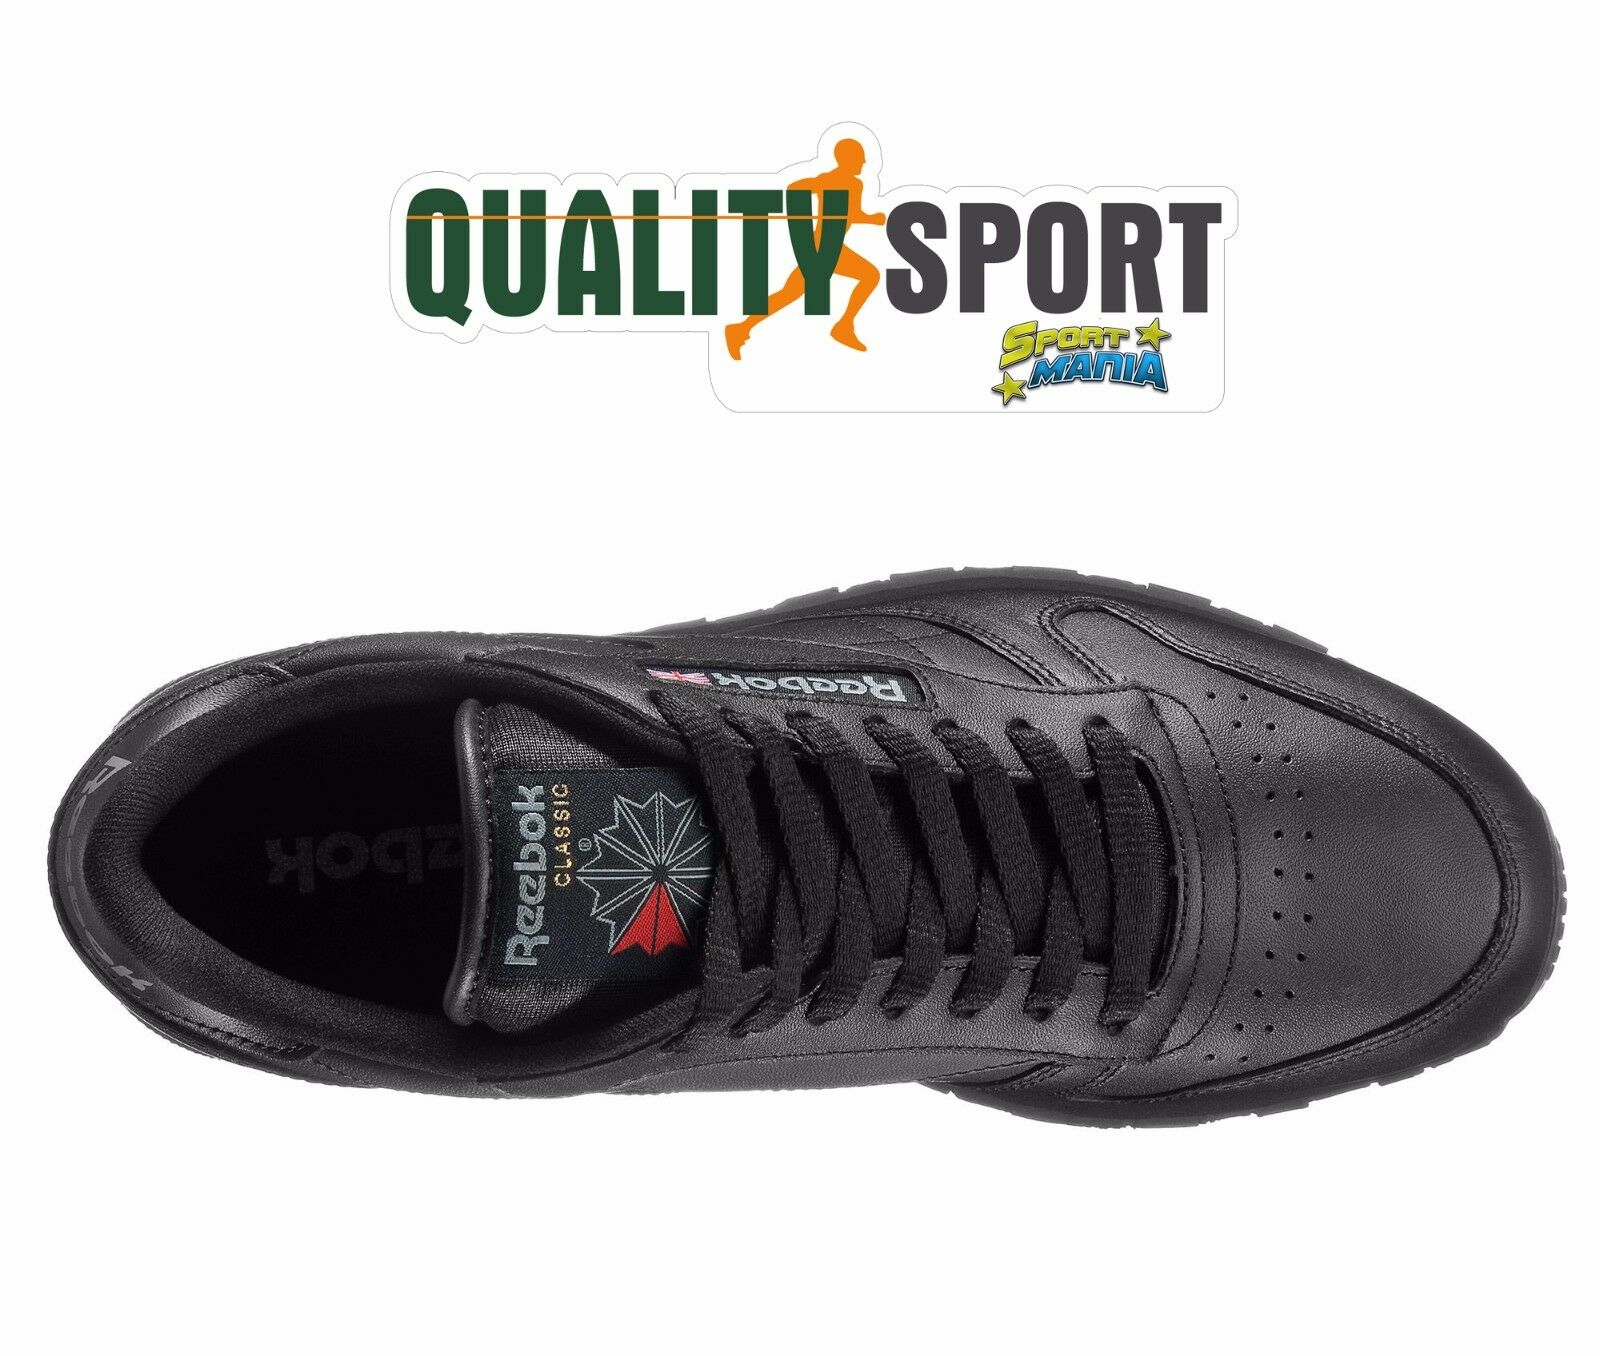 Reebok CL Classic Leather Nero Uomo Pelle Scarpe Shoes Sportive Sneakers 2267